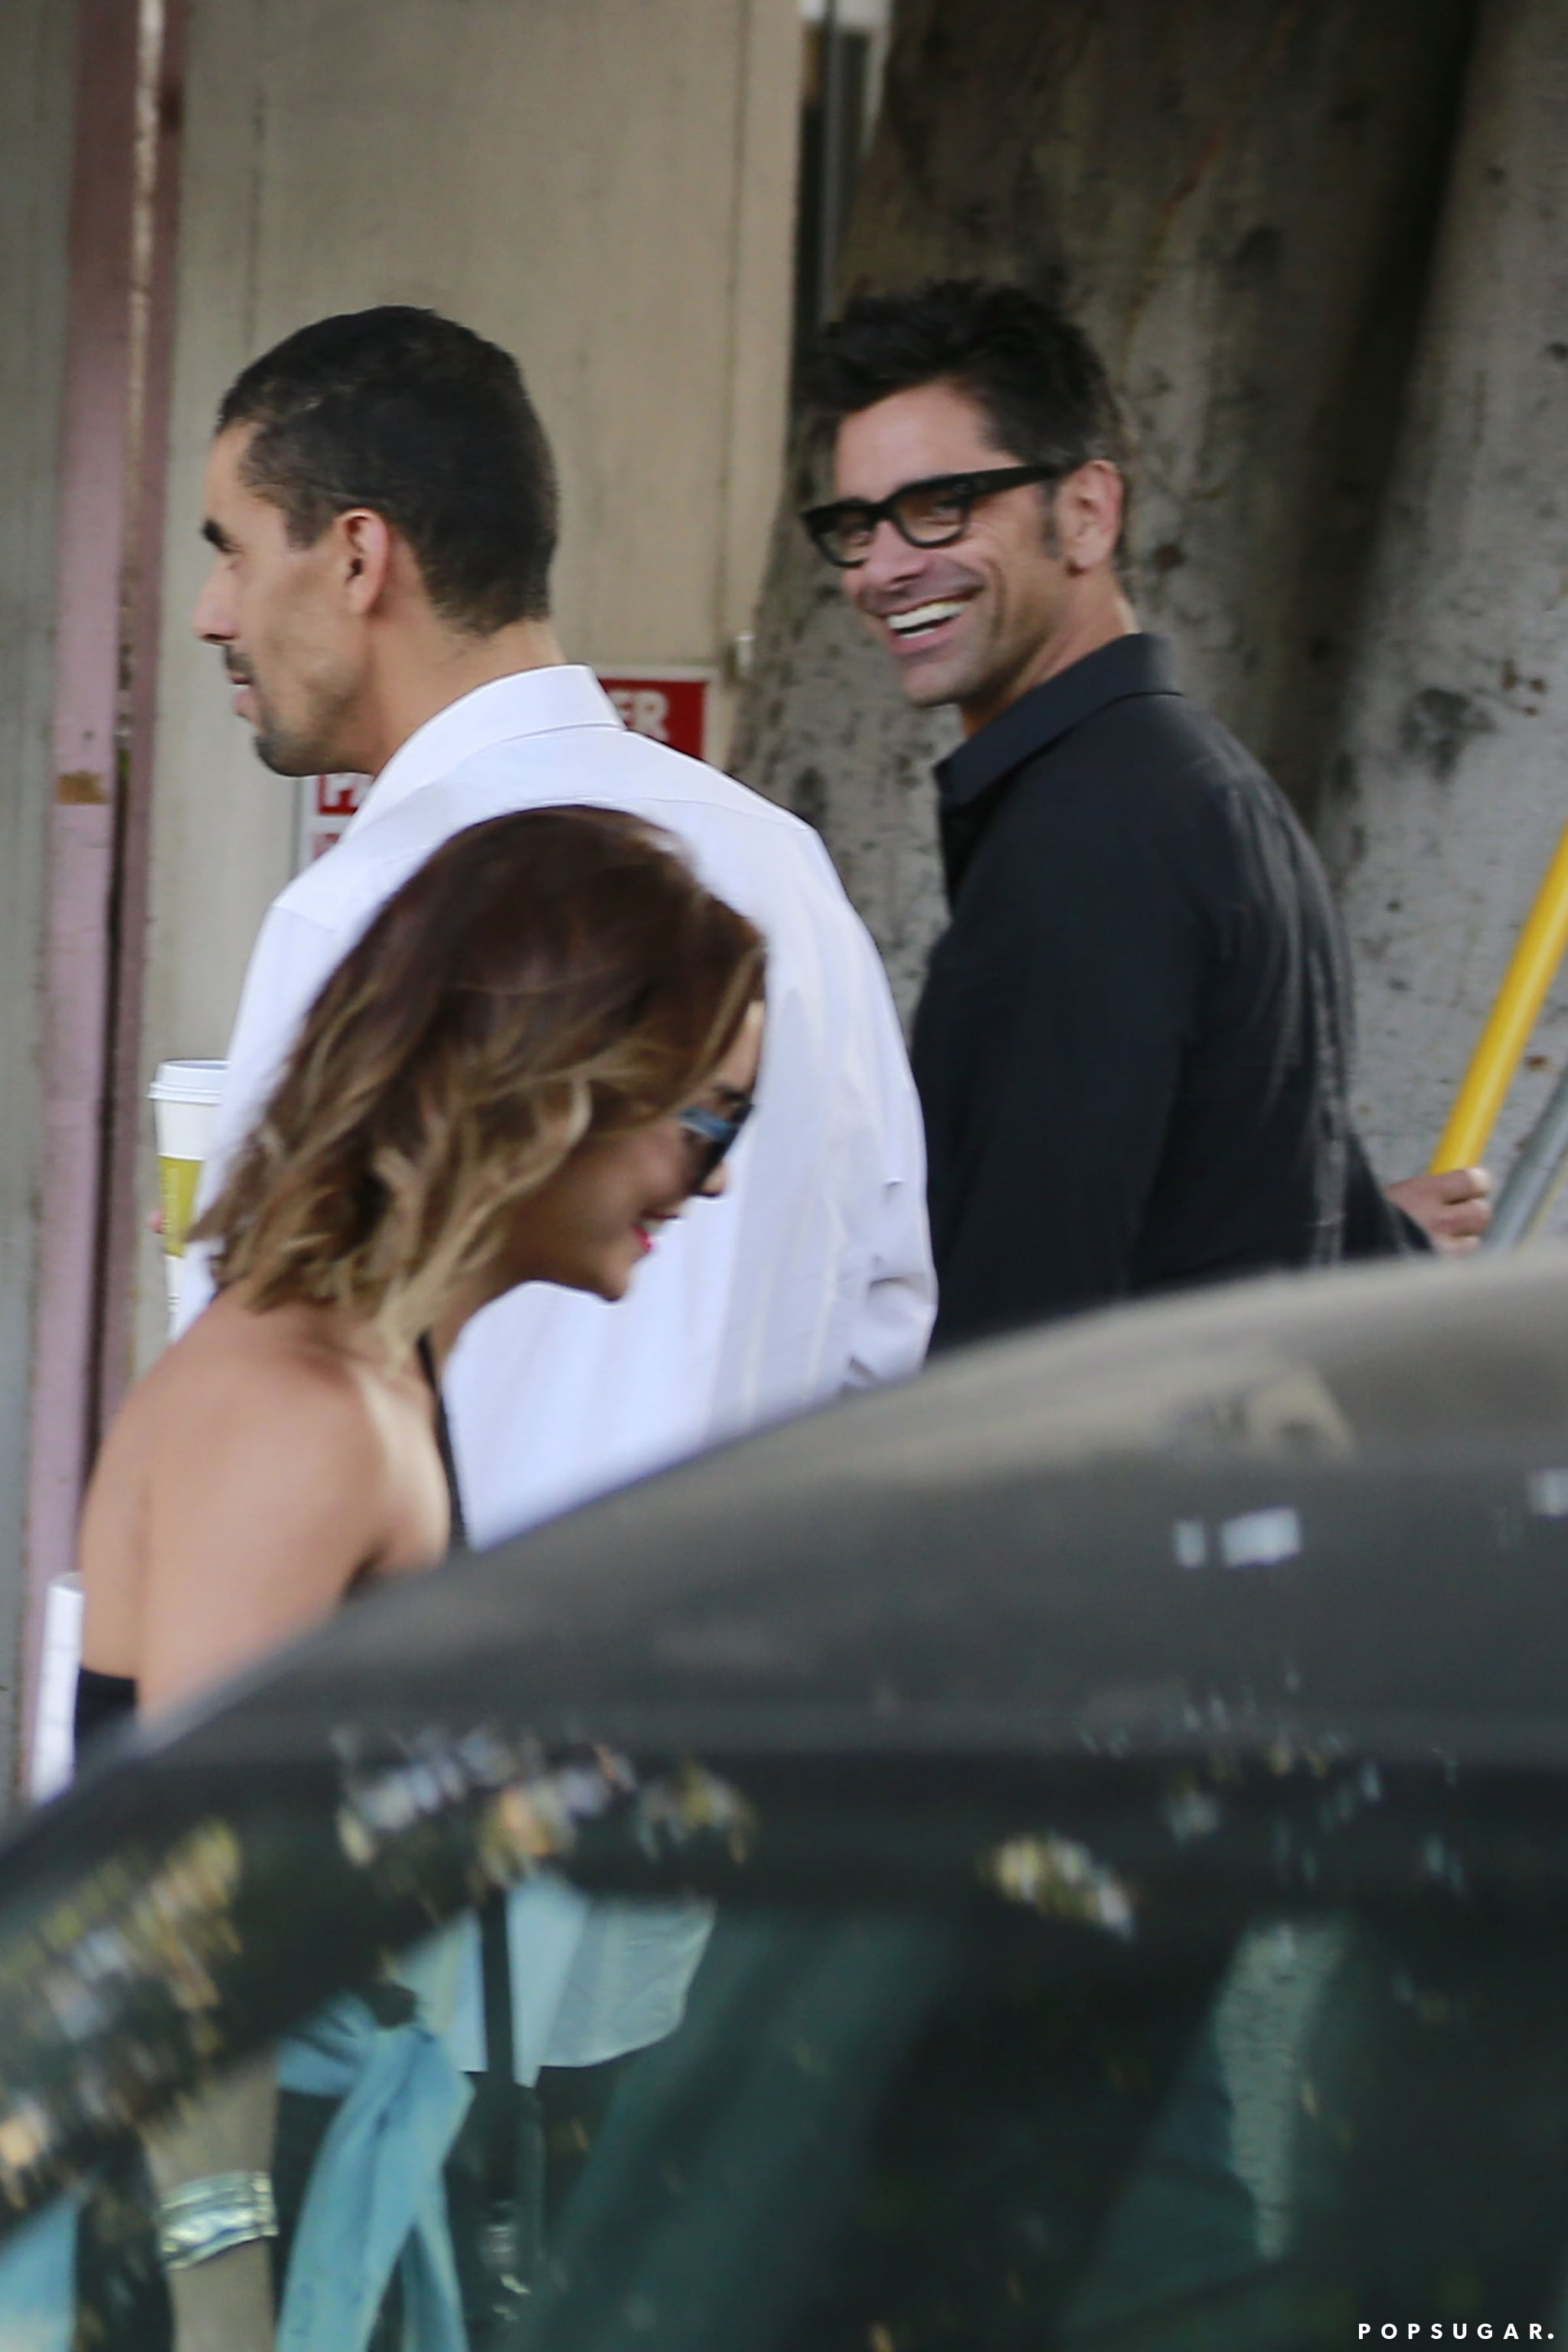 Vanessa Hudgens and John Stamos smiled when they spotted each other at the salon valet in LA on Friday.